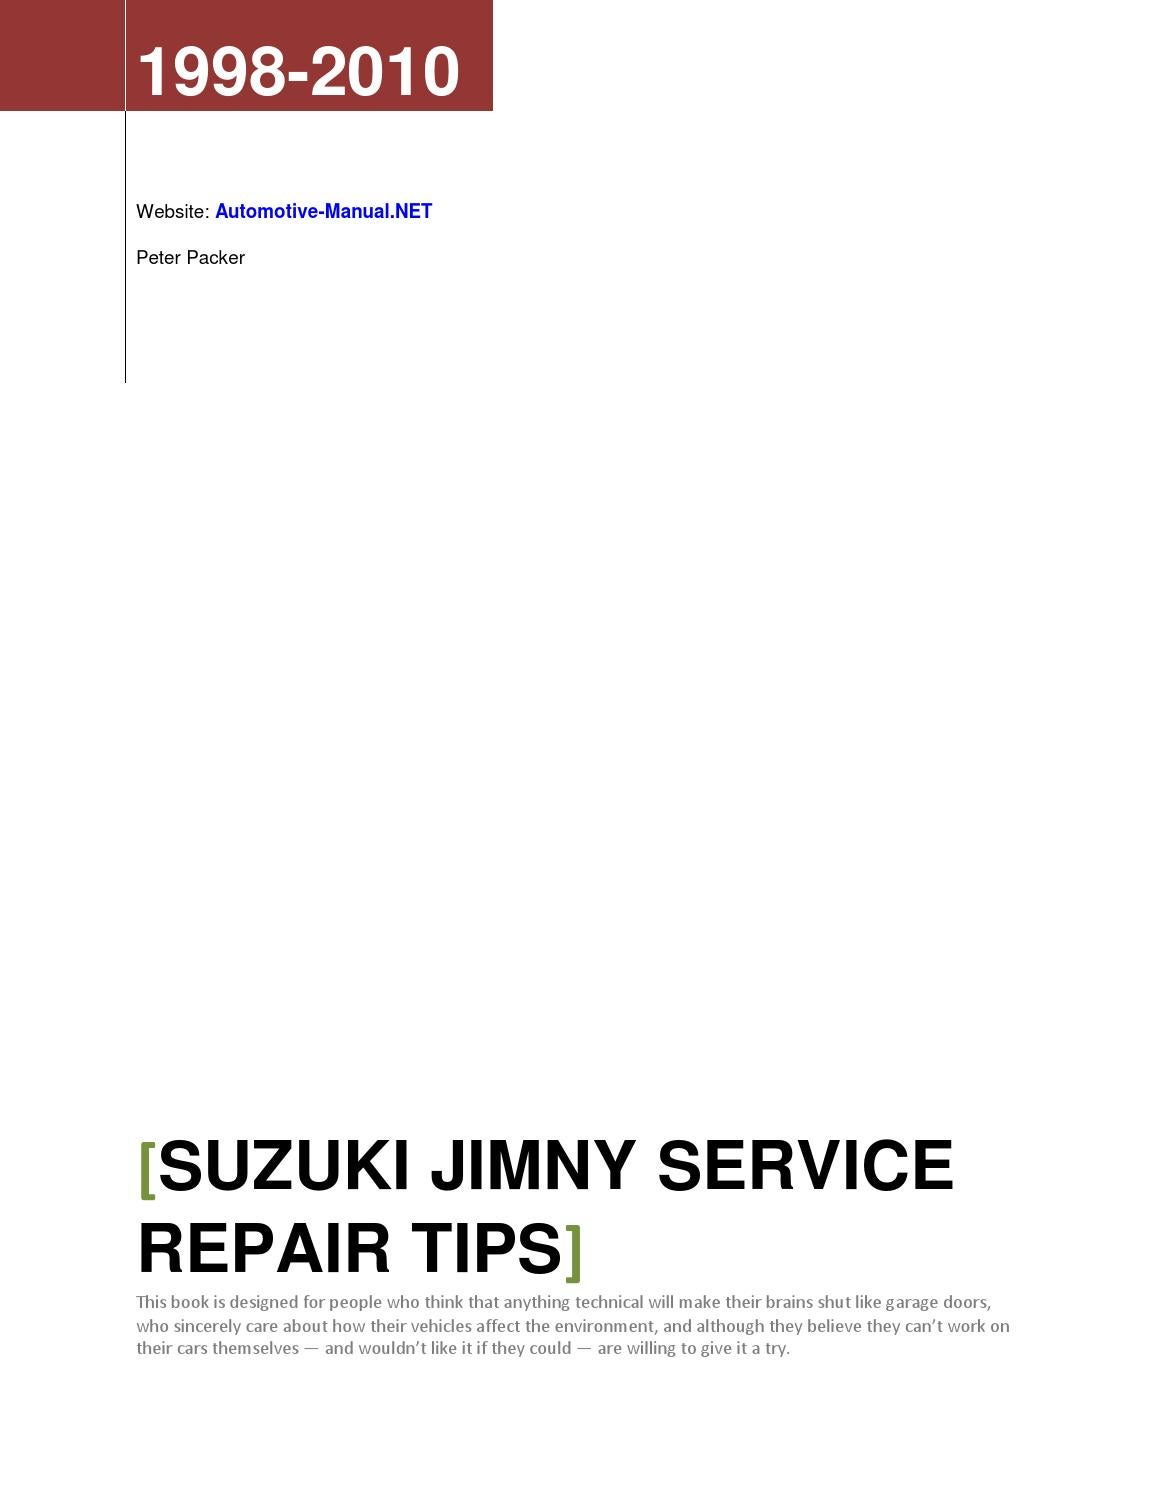 Suzuki Jimny 1998-2010 Service Repair Tips by Armando